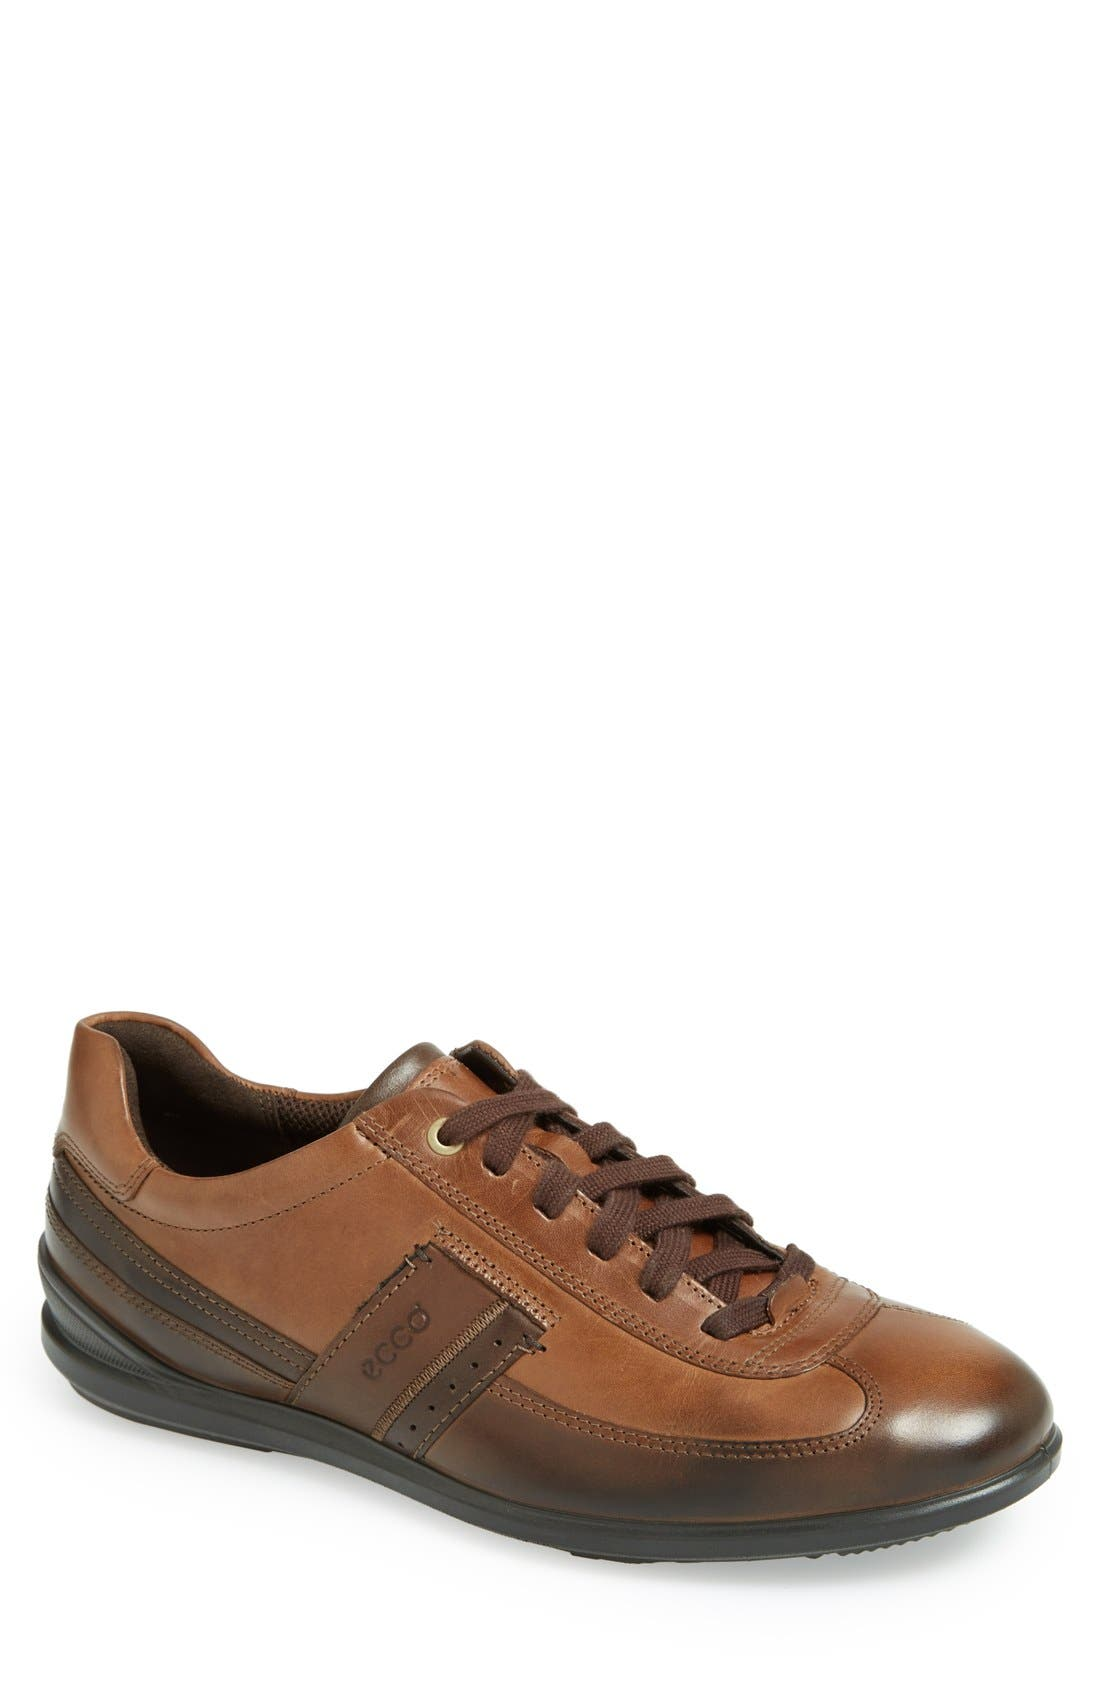 Main Image - ECCO 'Chander' Sneaker (Men)